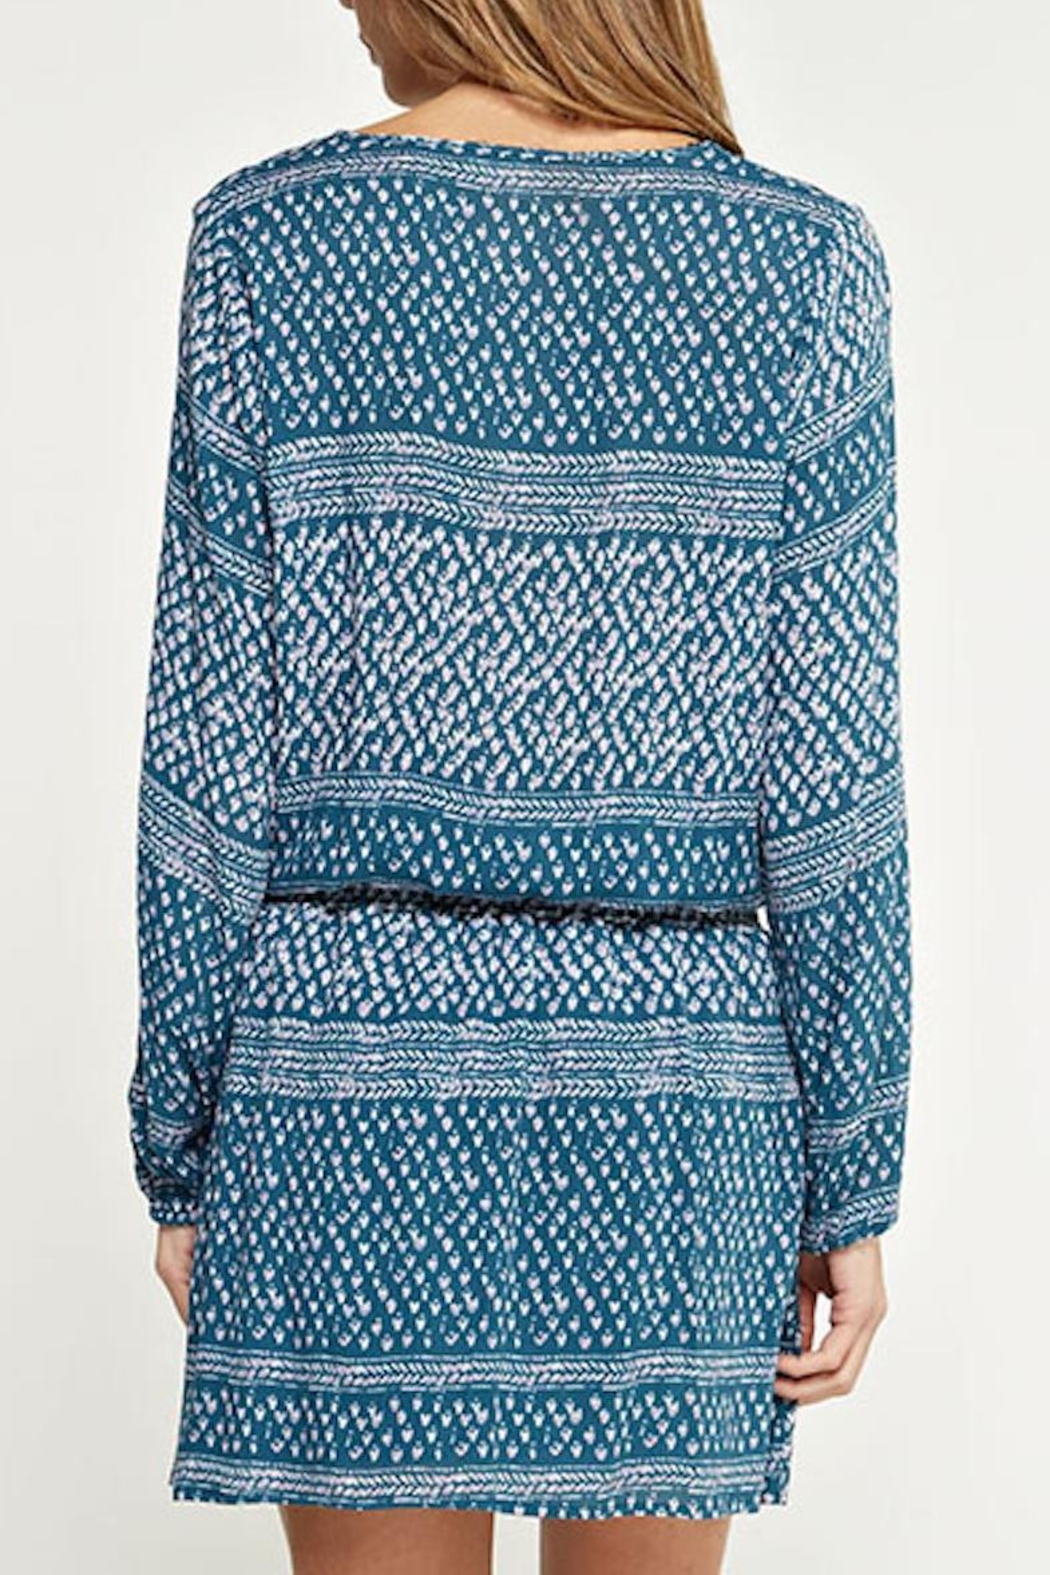 Lovestitch Printed Teal Dress - Side Cropped Image